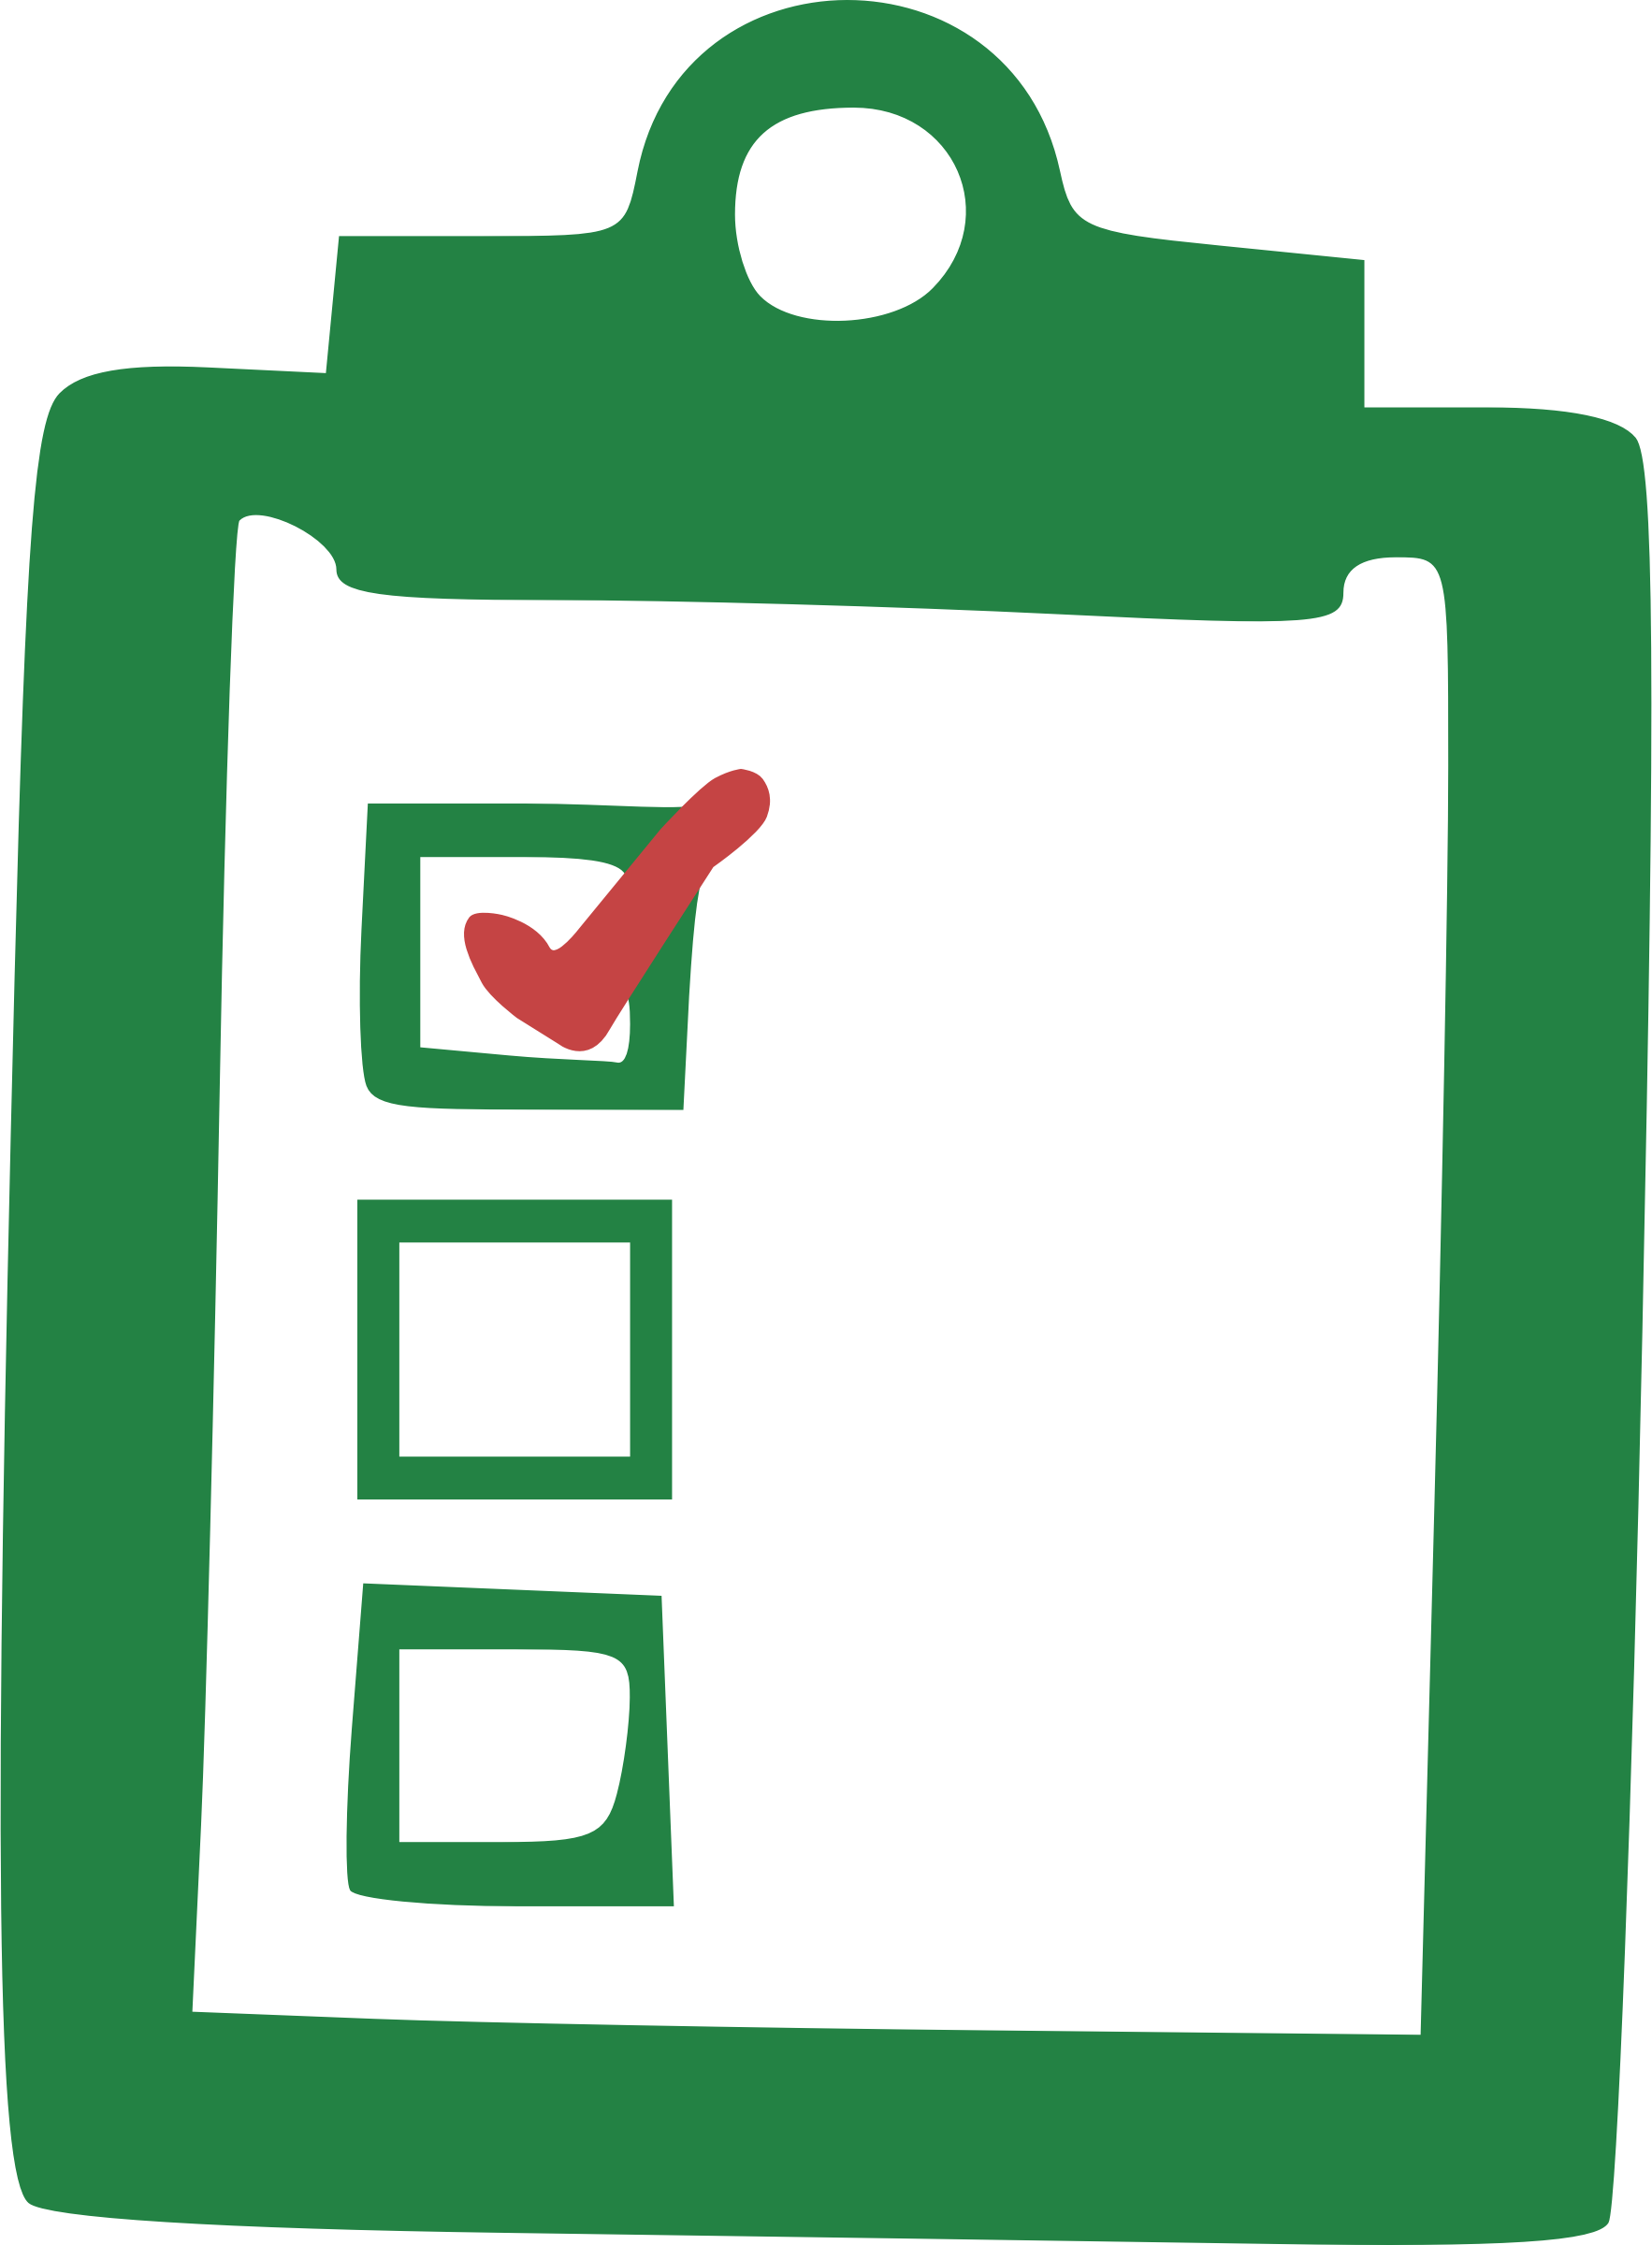 doing-clipart-checklist-11.png